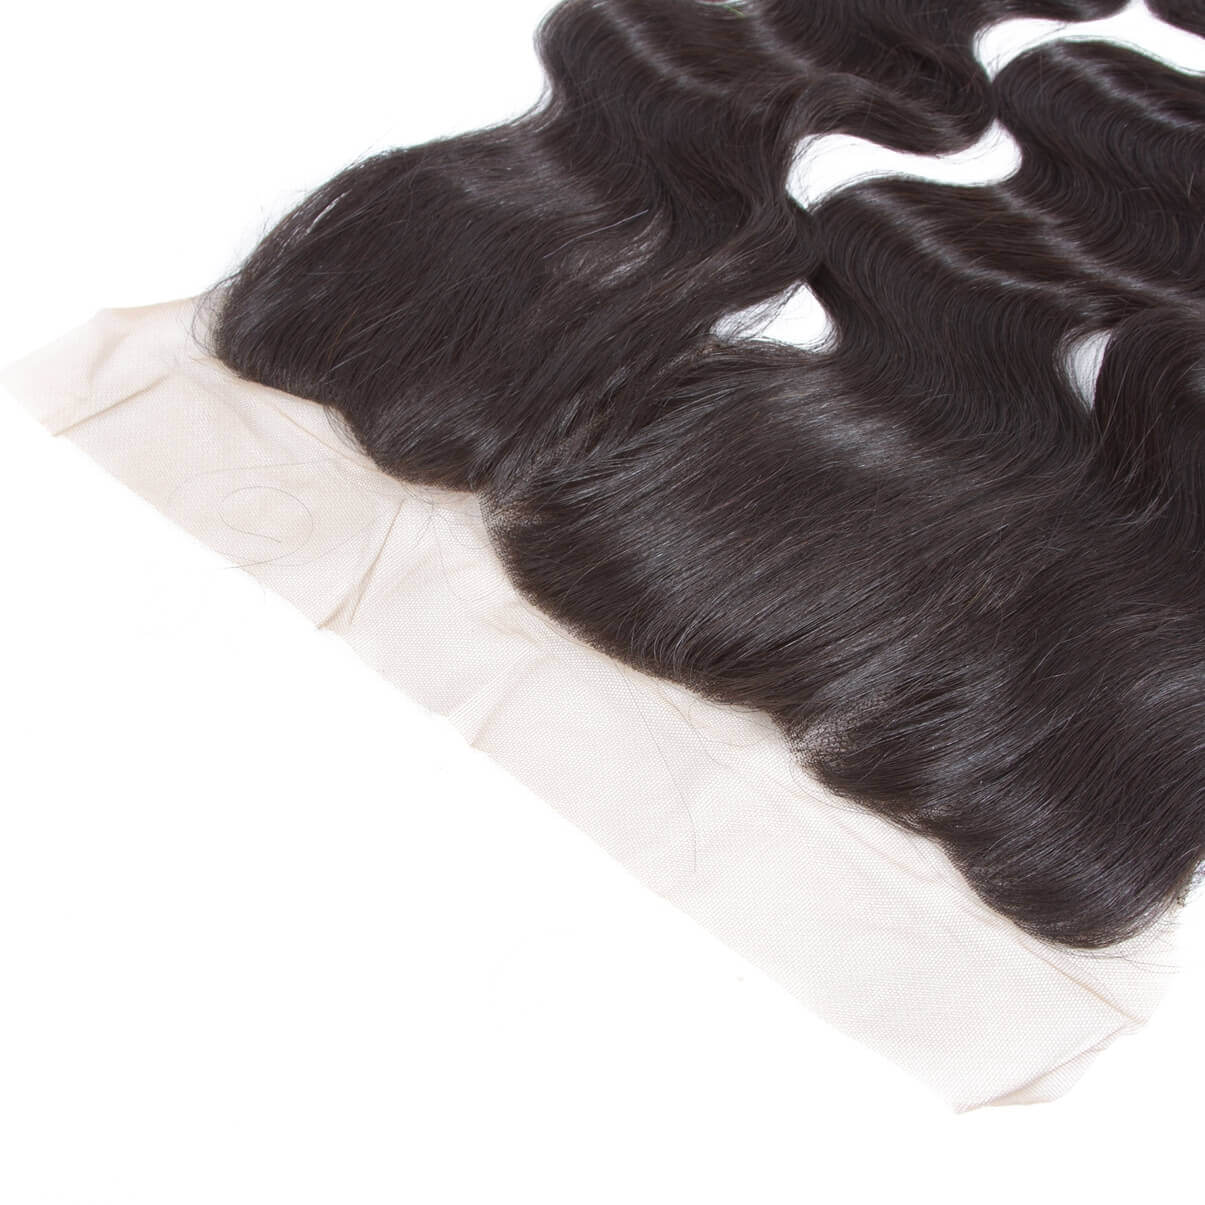 Lakihair Virgin Human Hair Brazilian Body Wave 4 Bundles With Lace Frontal Closure 13x4 Pre Plucked Ear To Ear Frontal